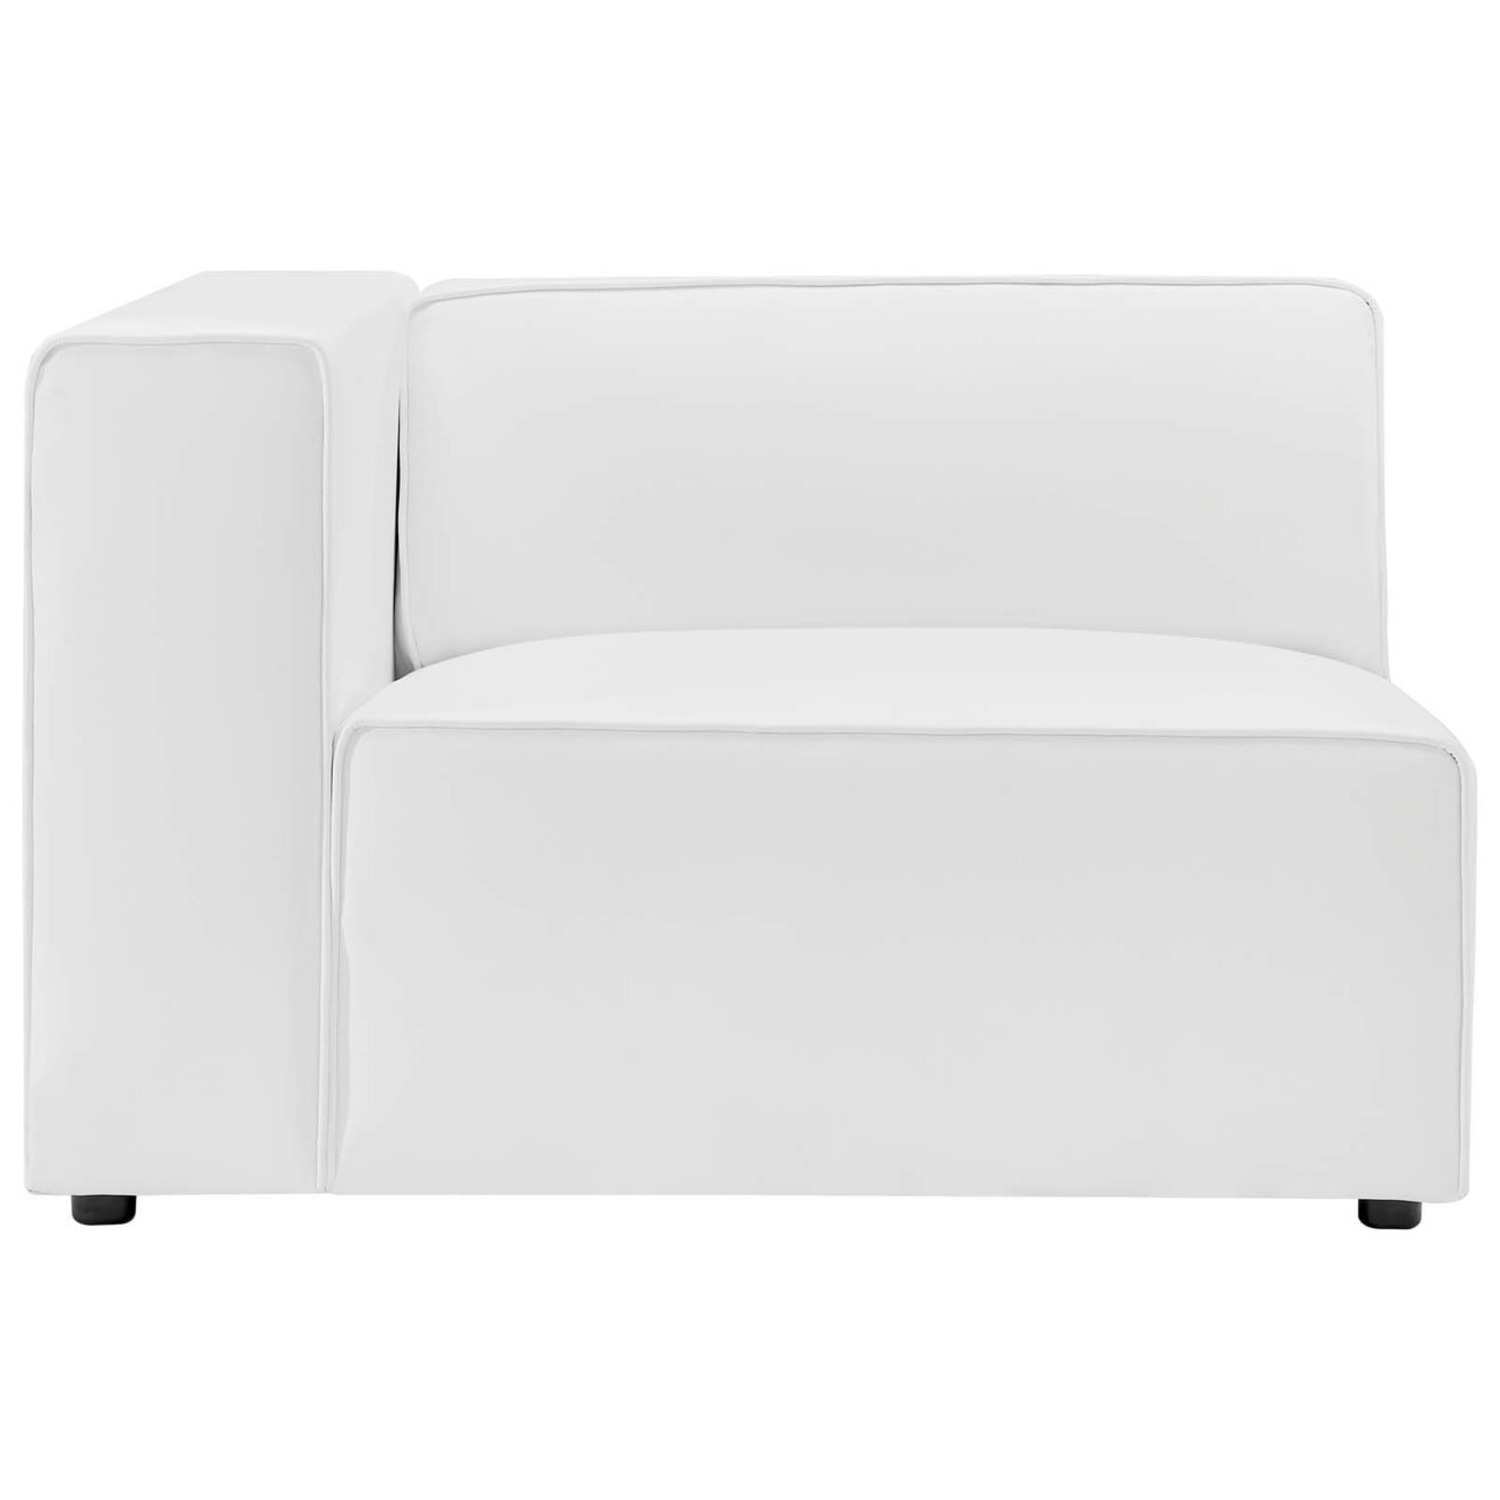 2-Piece Sectional Sofa In White Leather Finish - image-4